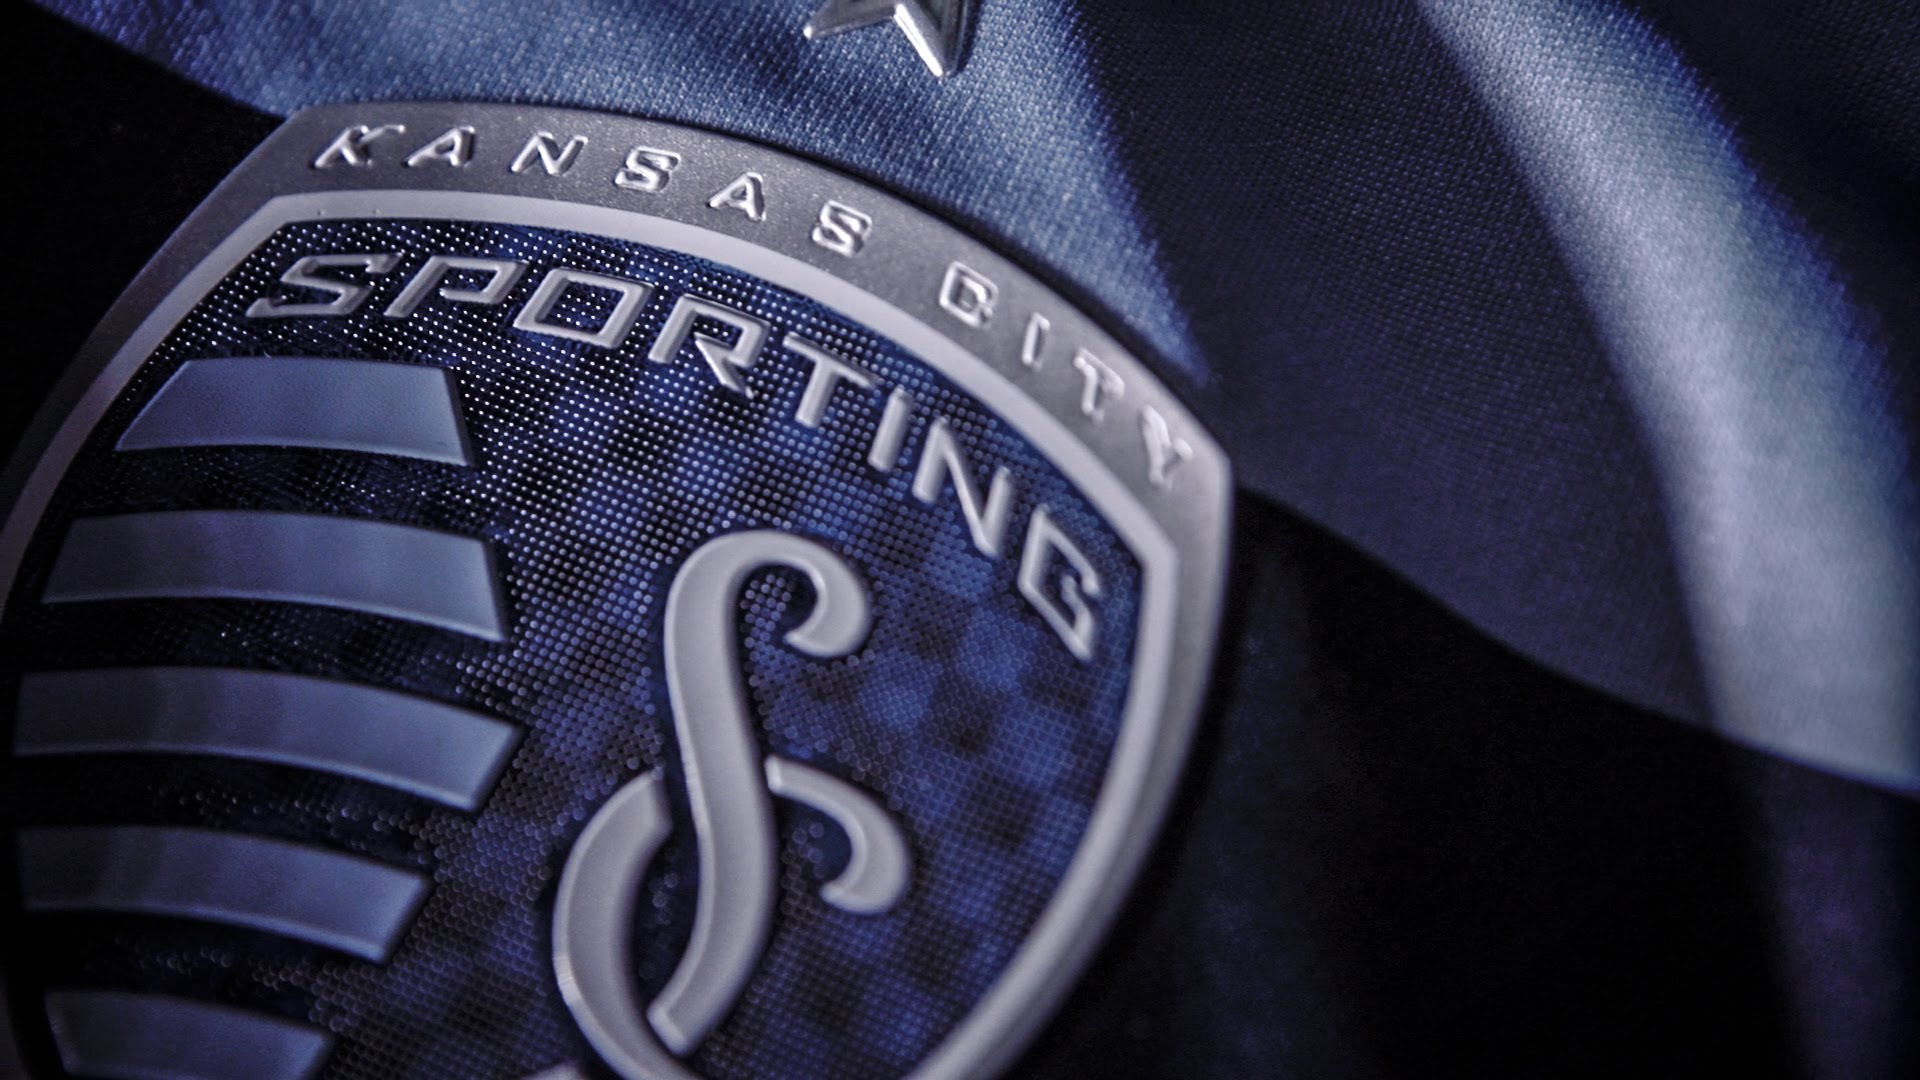 Sporting Kc Wallpaper